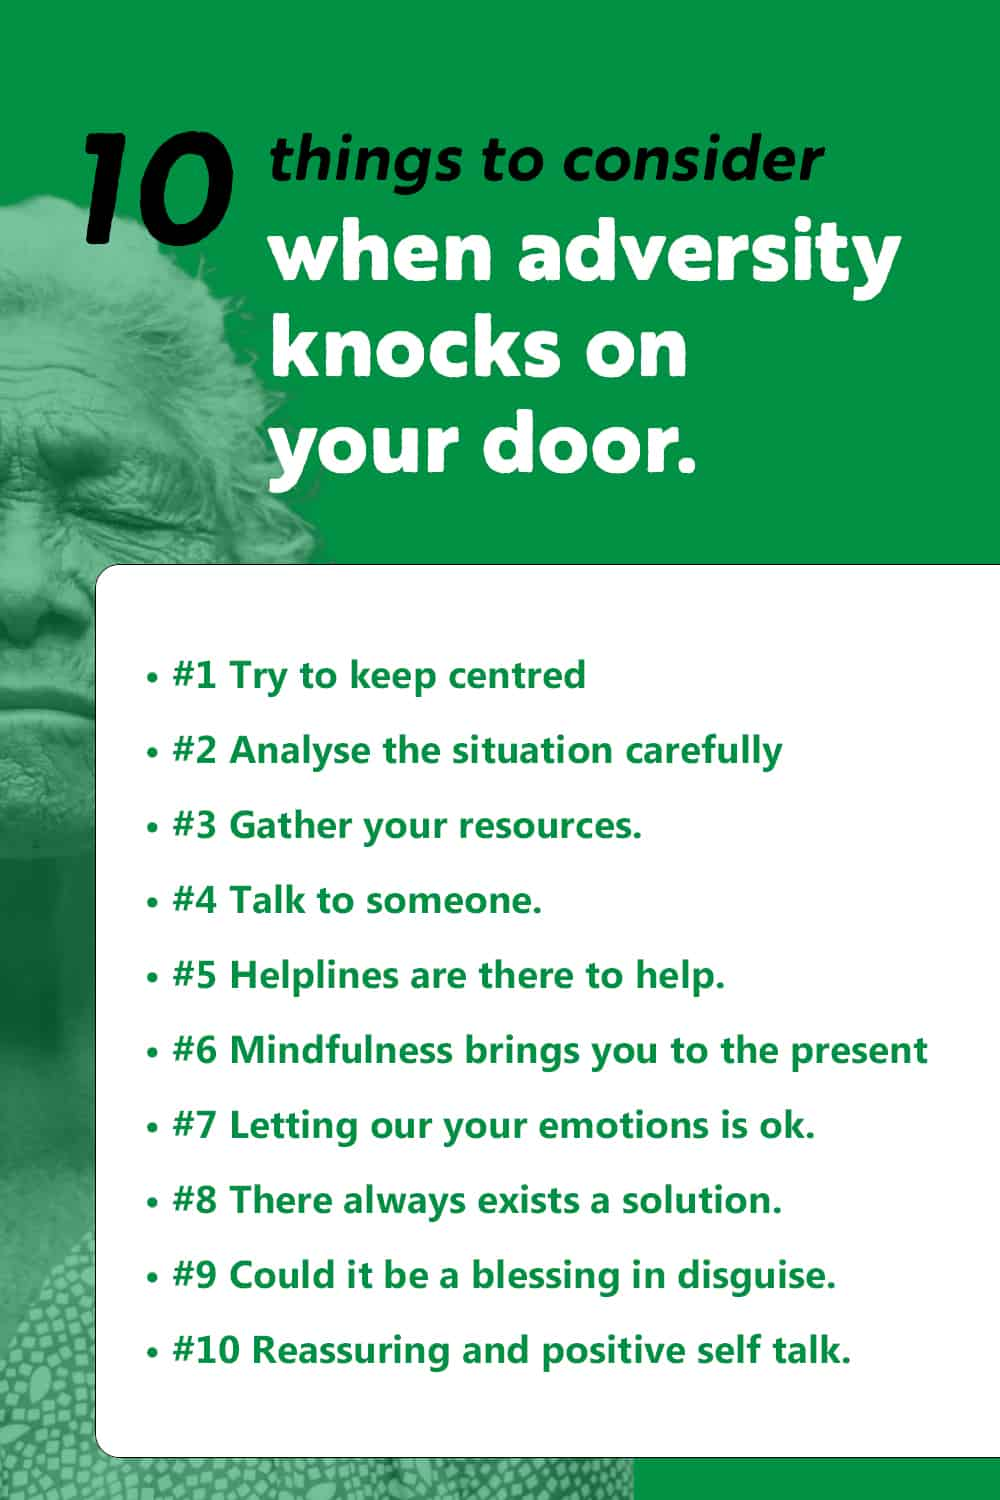 infographic on the 10 things to consider when adversity knock on your door.